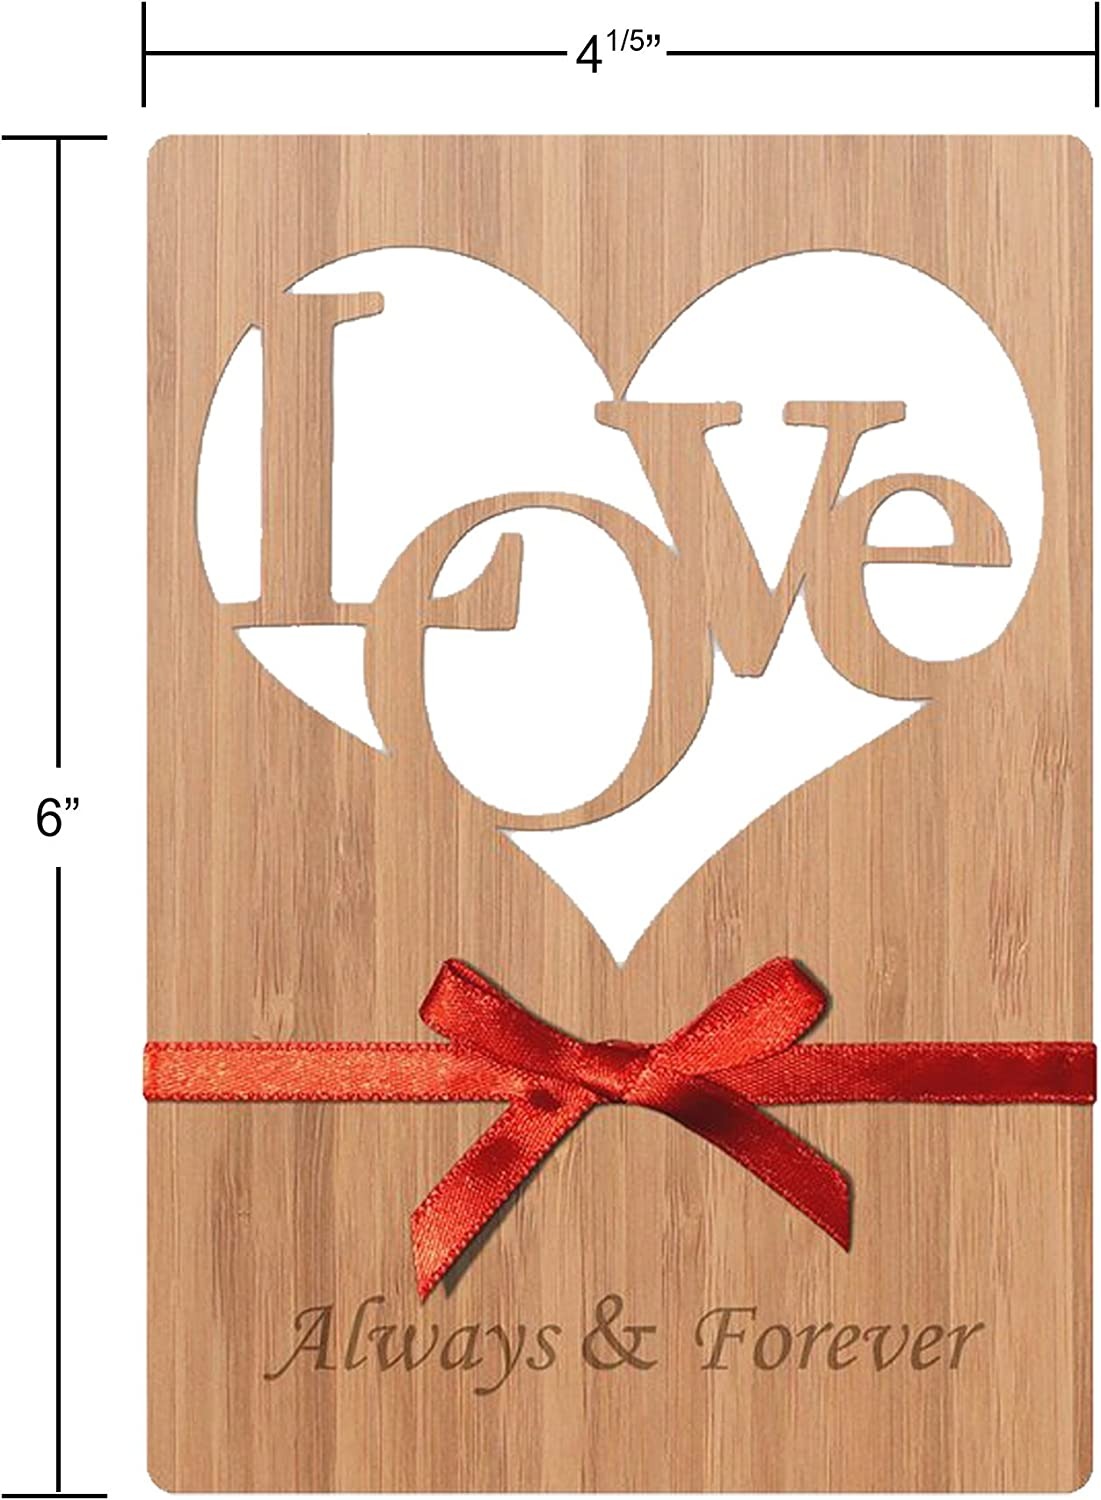 Perfect Way To Say I Love You Or Husband: Love Greeting Cards Handmade in Real Wood For Him//Her Anniversary Card For Wife Just Because Valentines Day Happy Birthday